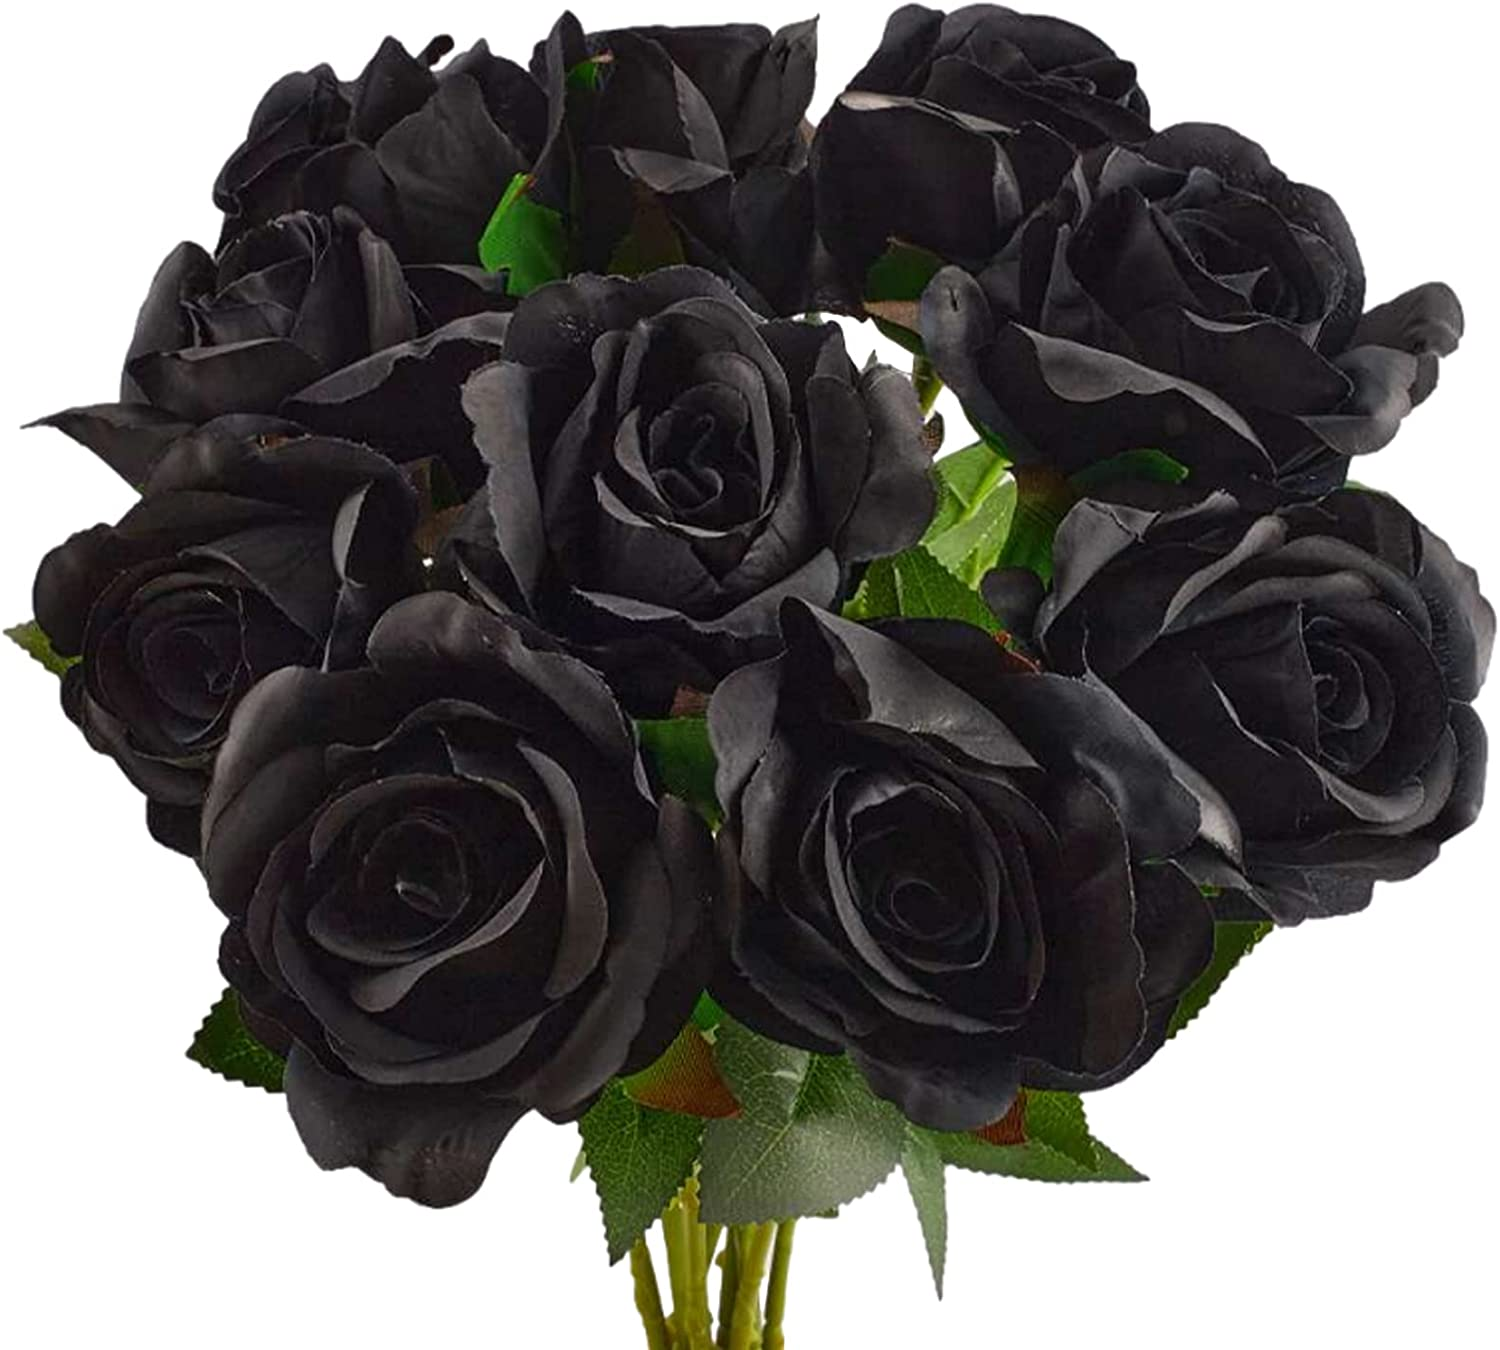 InDrah 10Pcs Black Roses Artificial Flowers Bouquet Lifelike Fake Rose for Wedding Home Party Decoration(Black)